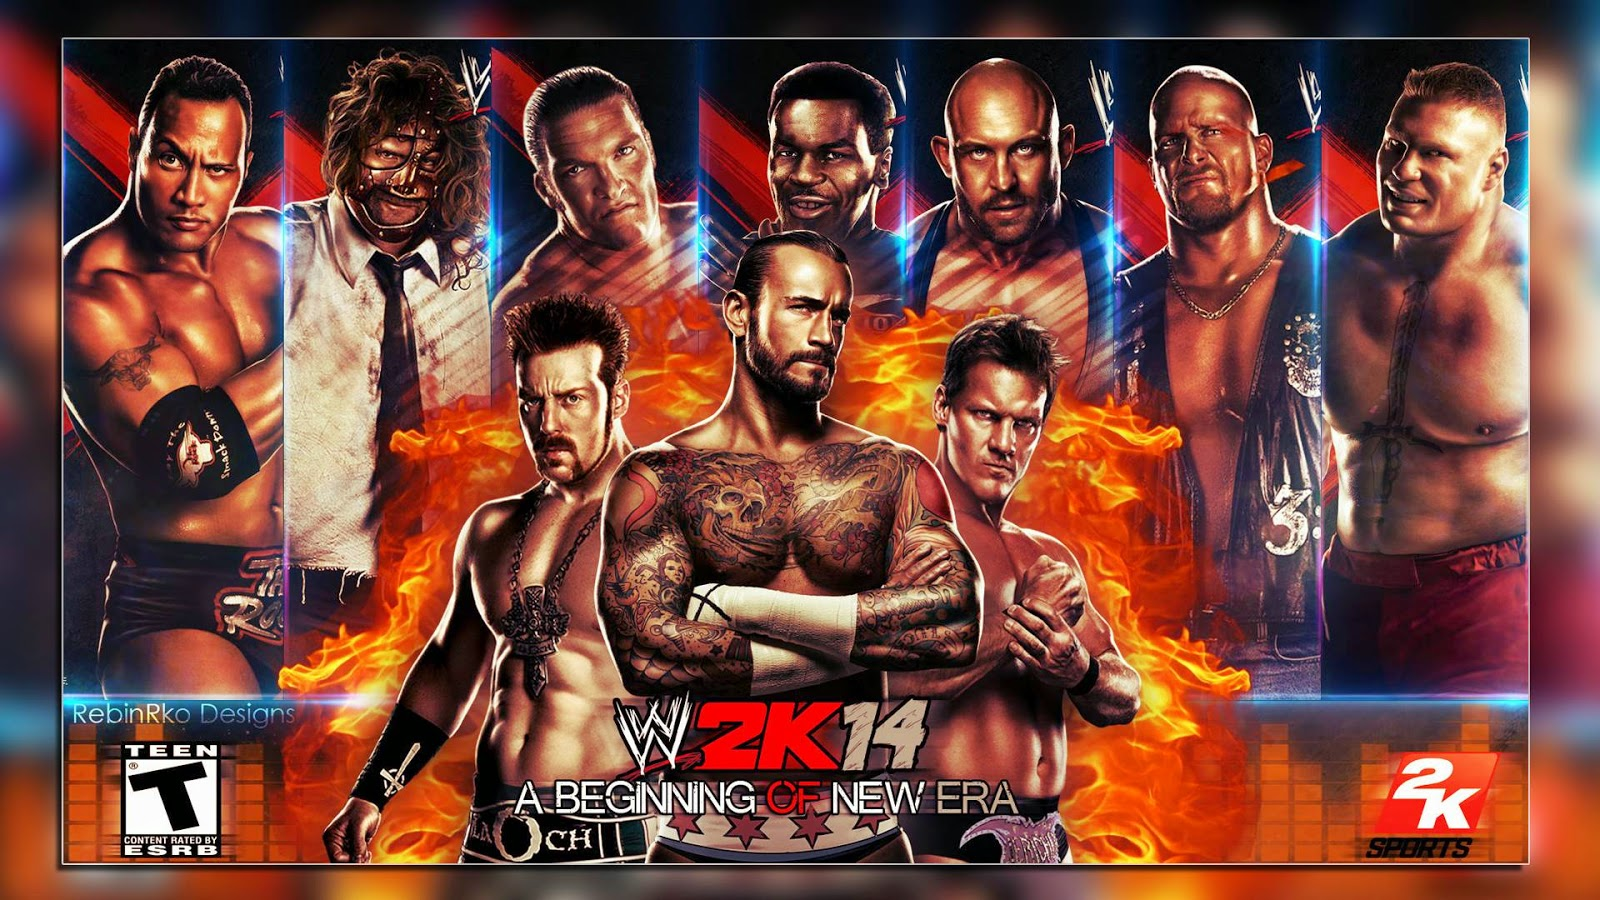 wwe 2k14 game reviews for wwe fans